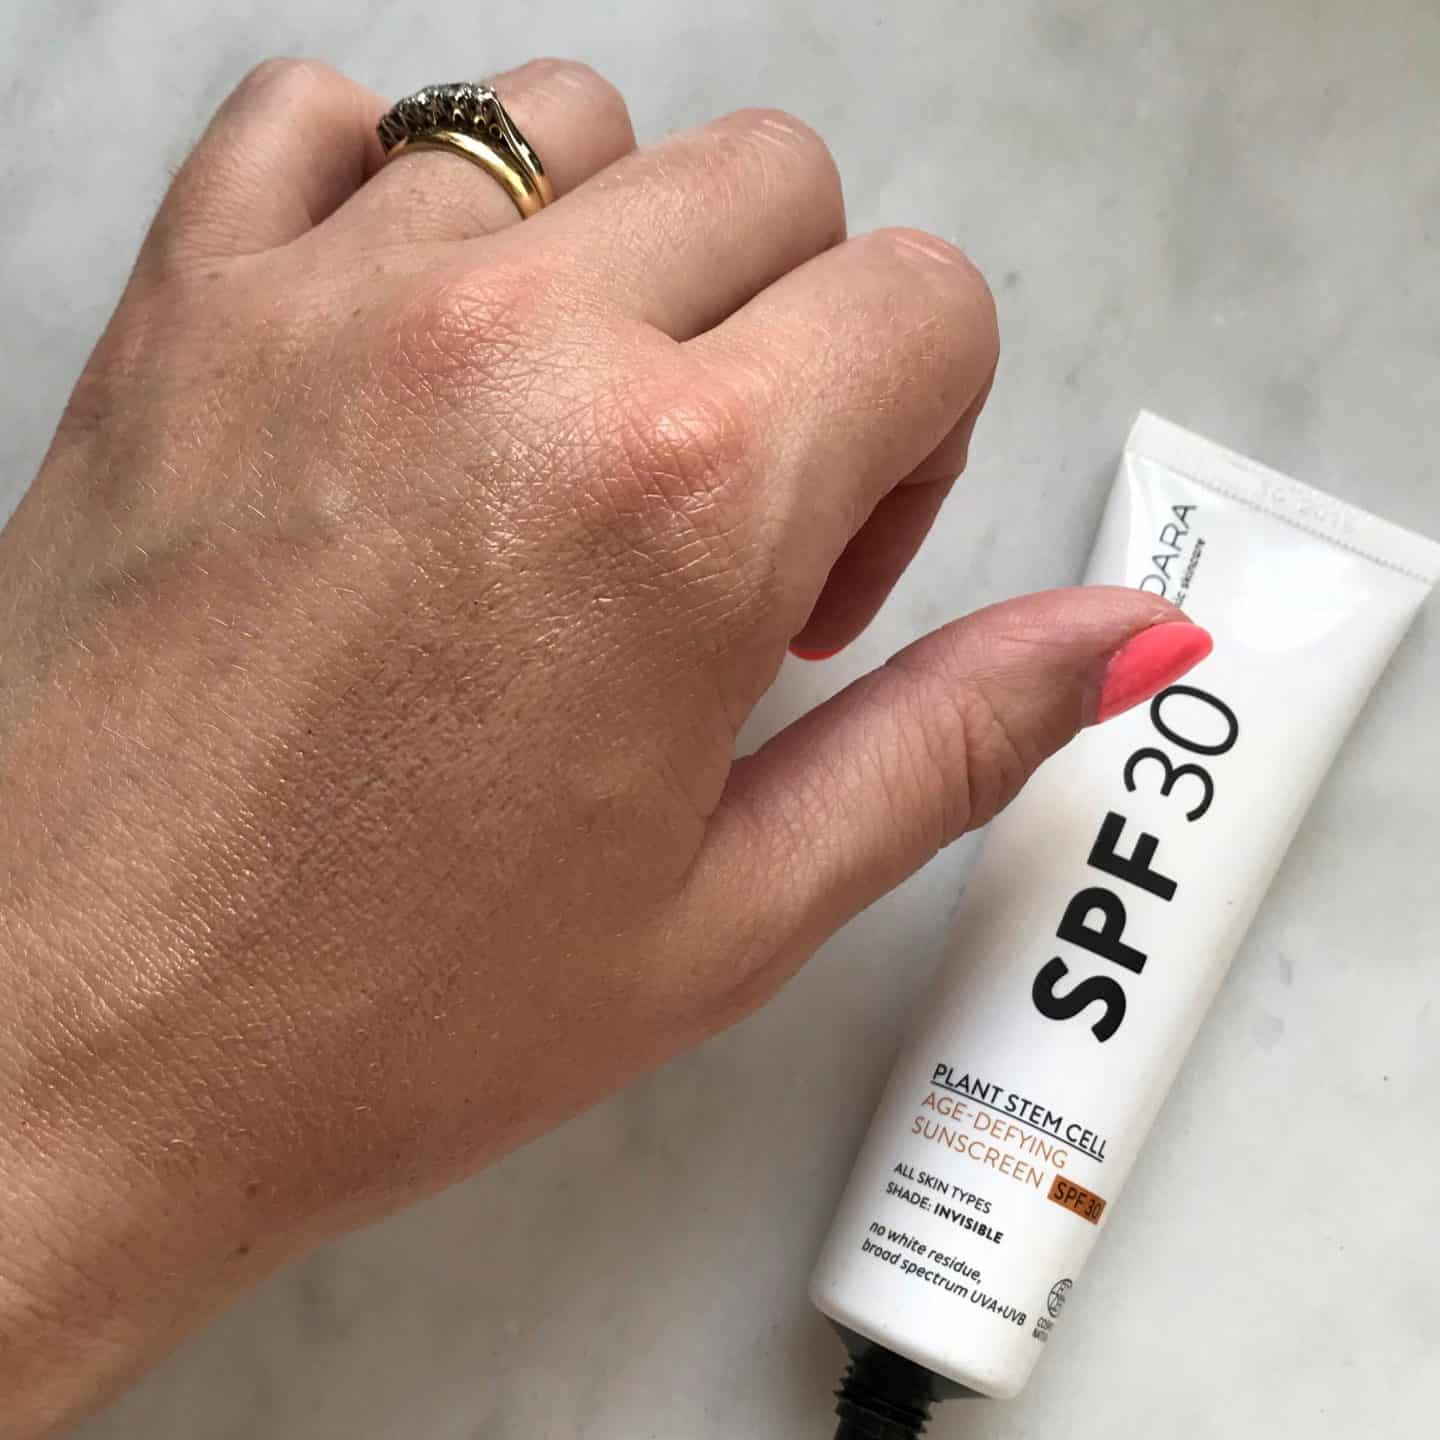 Madara SPF30 Plant Stem Cell Age-Defying Sunscreen smoothed in